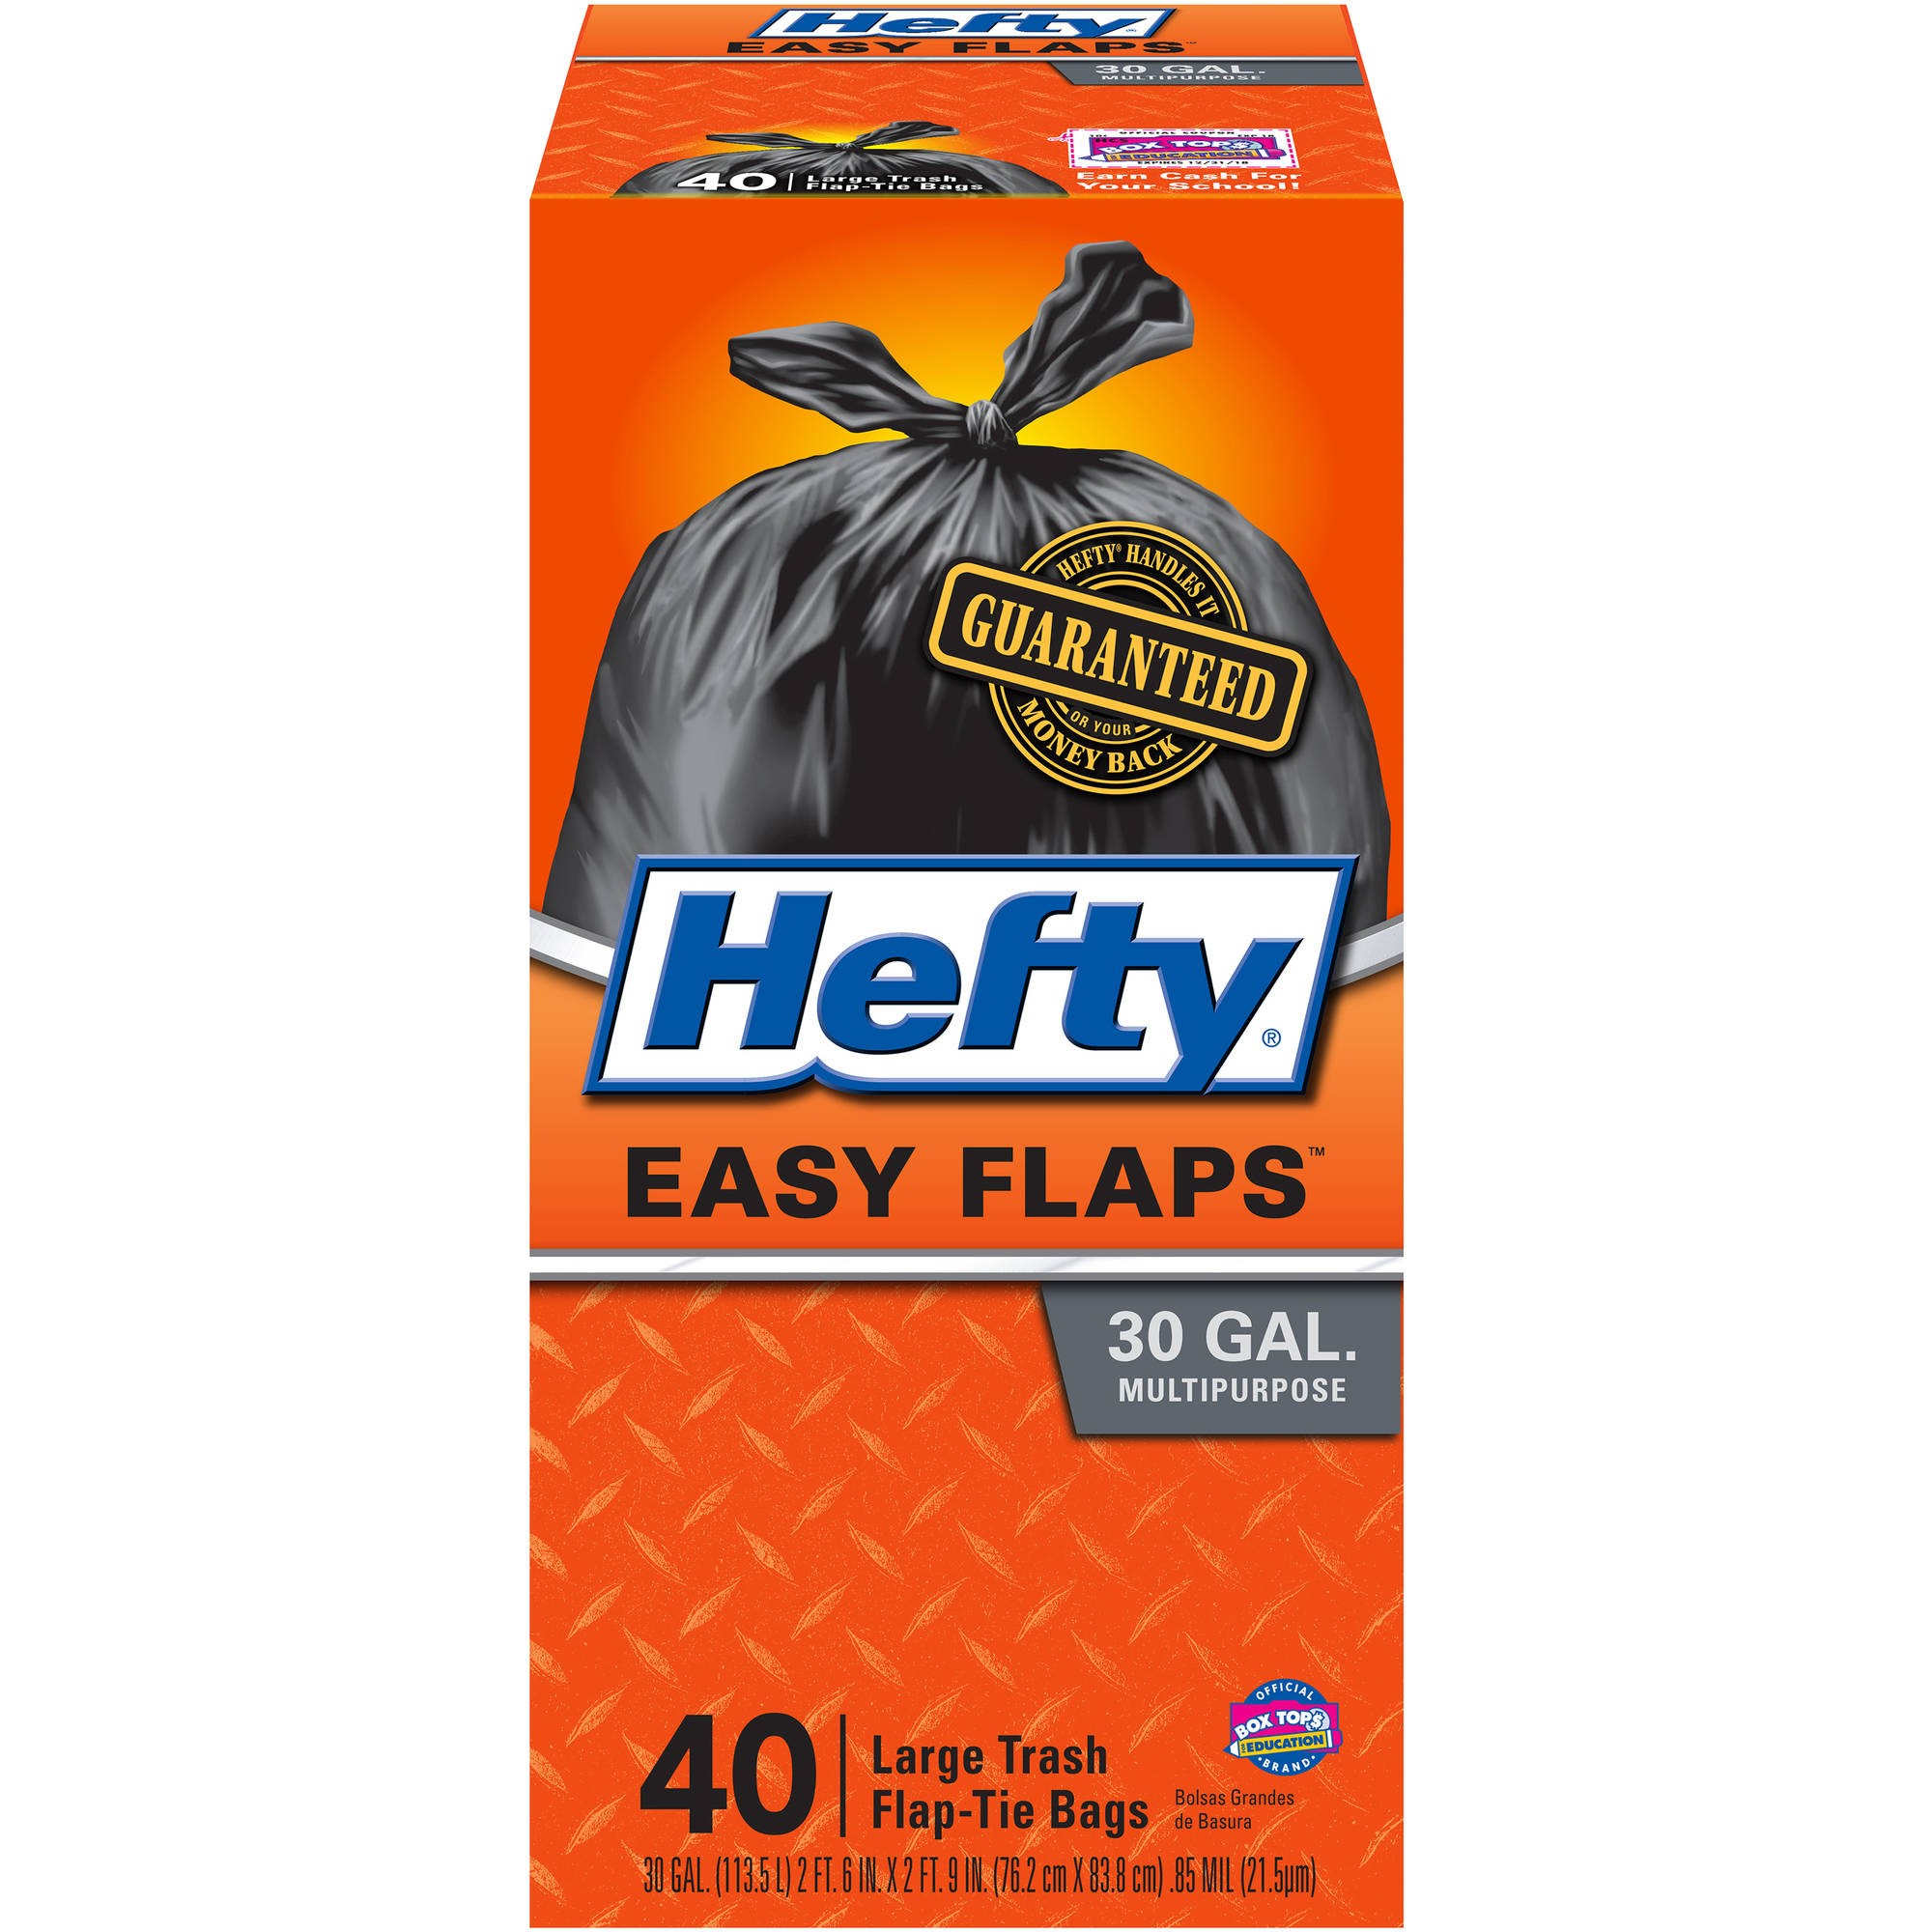 Hefty EasyFLAPS Trash Bags, 30 Gallons, Black, 40 Ct